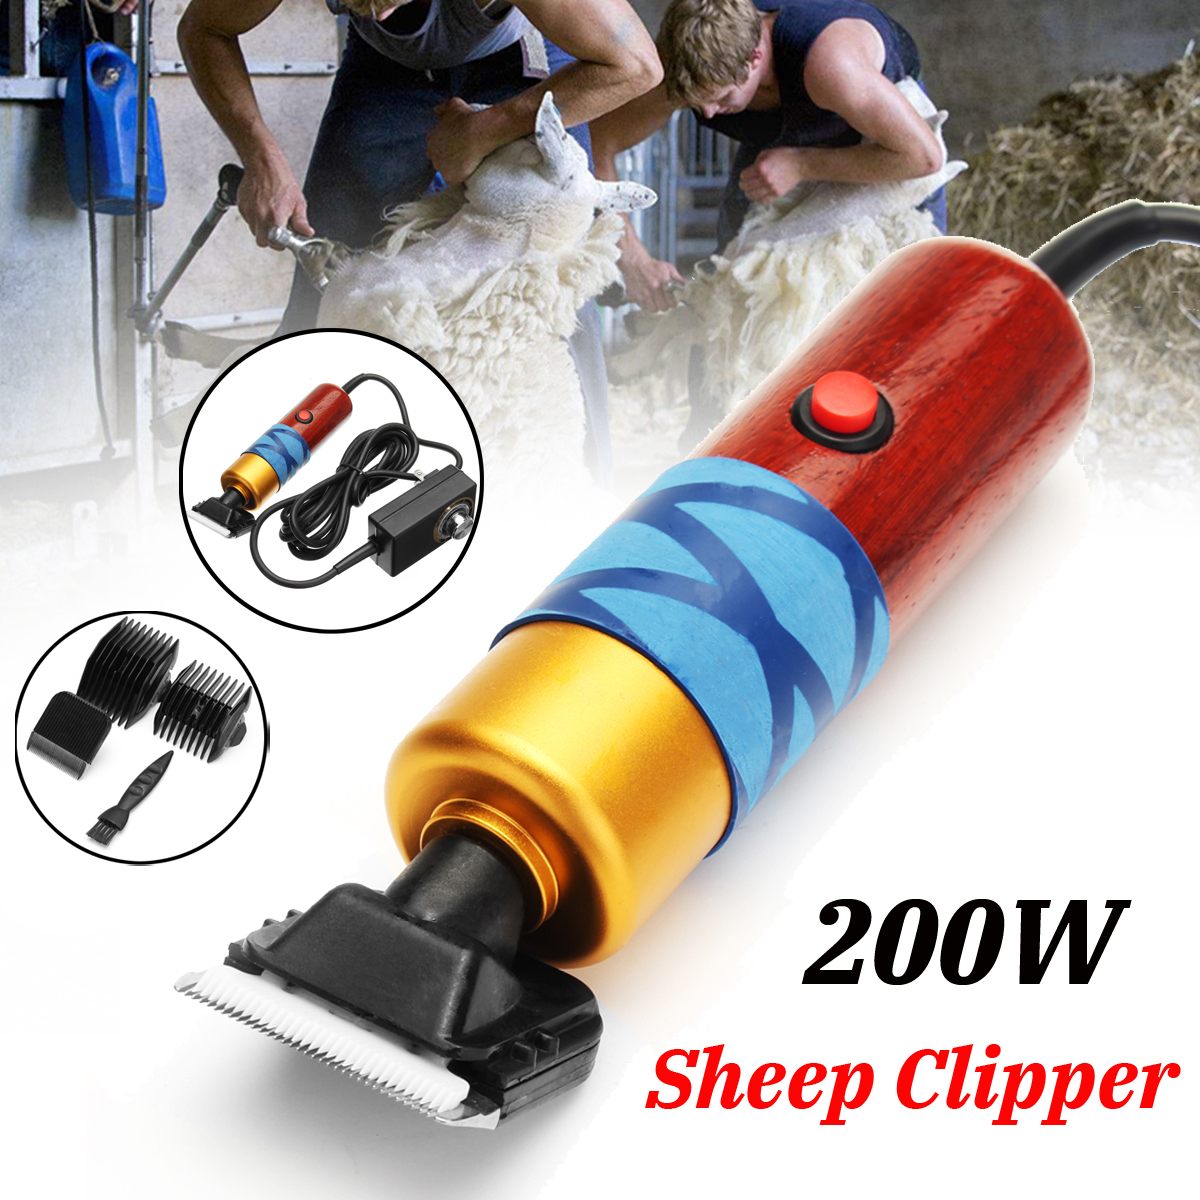 200W Electric Sheep Clipper Professional Dog Grooming Kit For Rabbit Pet Dog Grooming Tools 100-240V200W Electric Sheep Clipper Professional Dog Grooming Kit For Rabbit Pet Dog Grooming Tools 100-240V